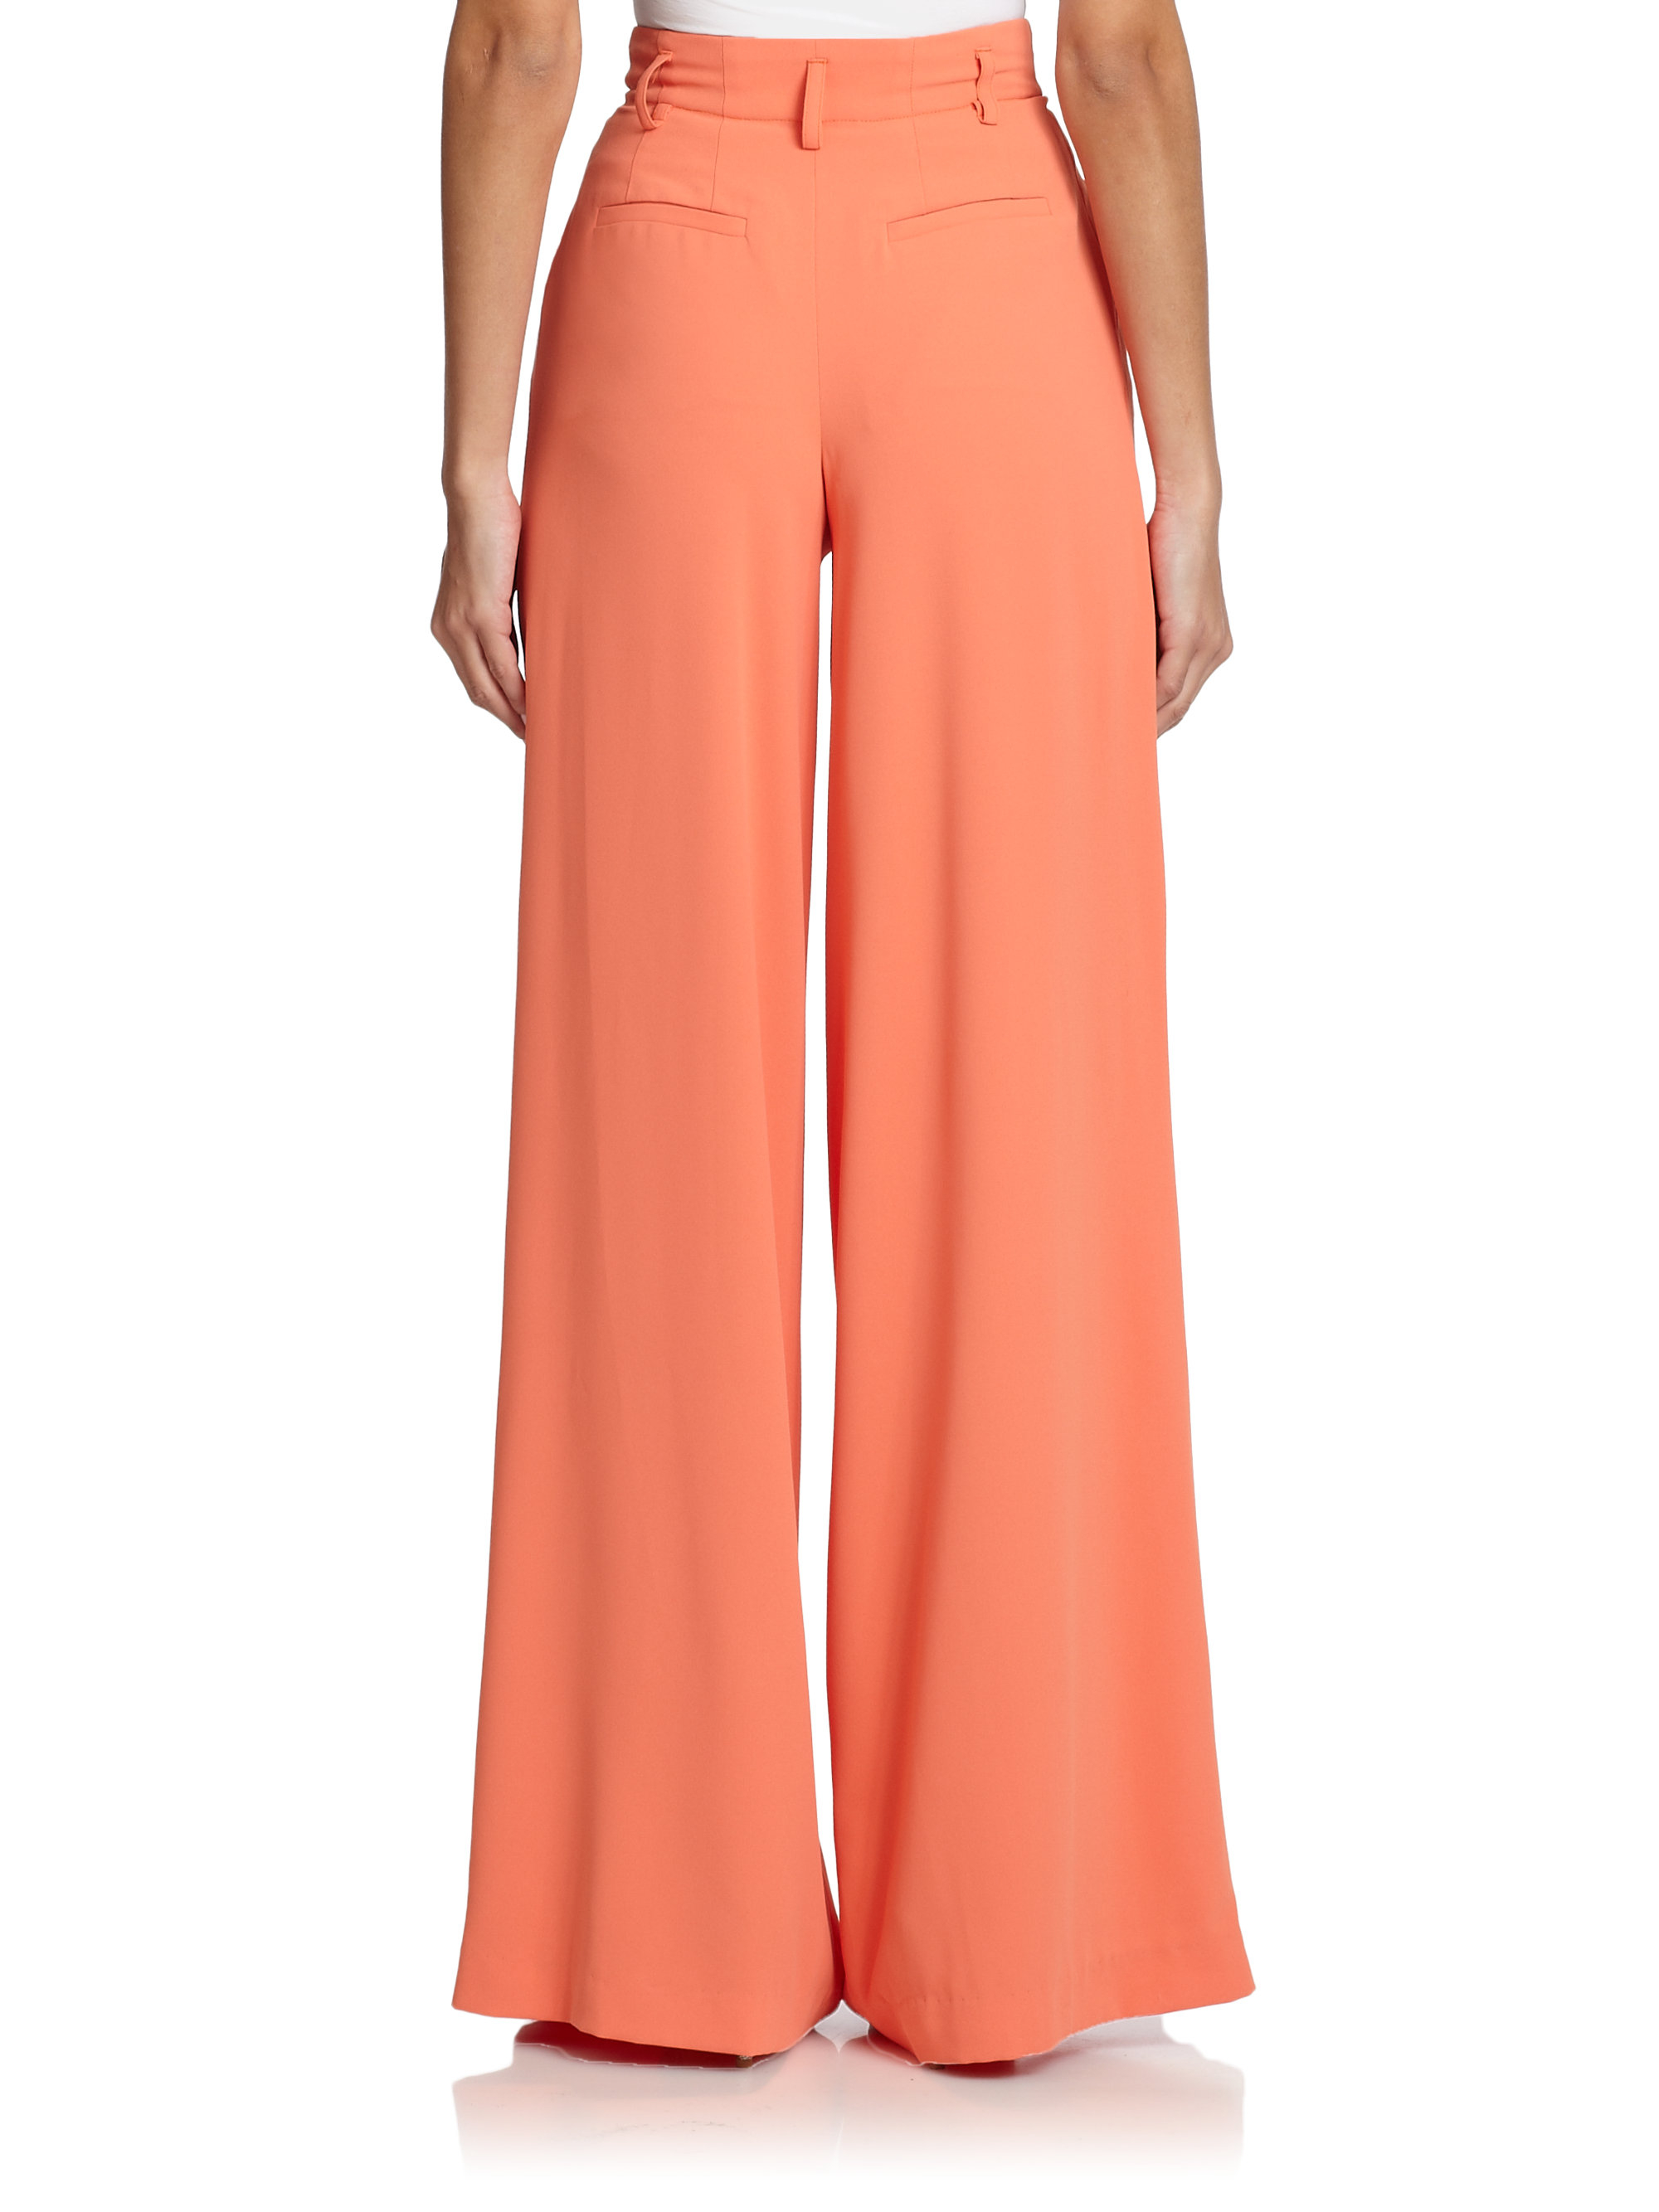 Alice   olivia High-Waisted Wide-Leg Pants in Pink | Lyst